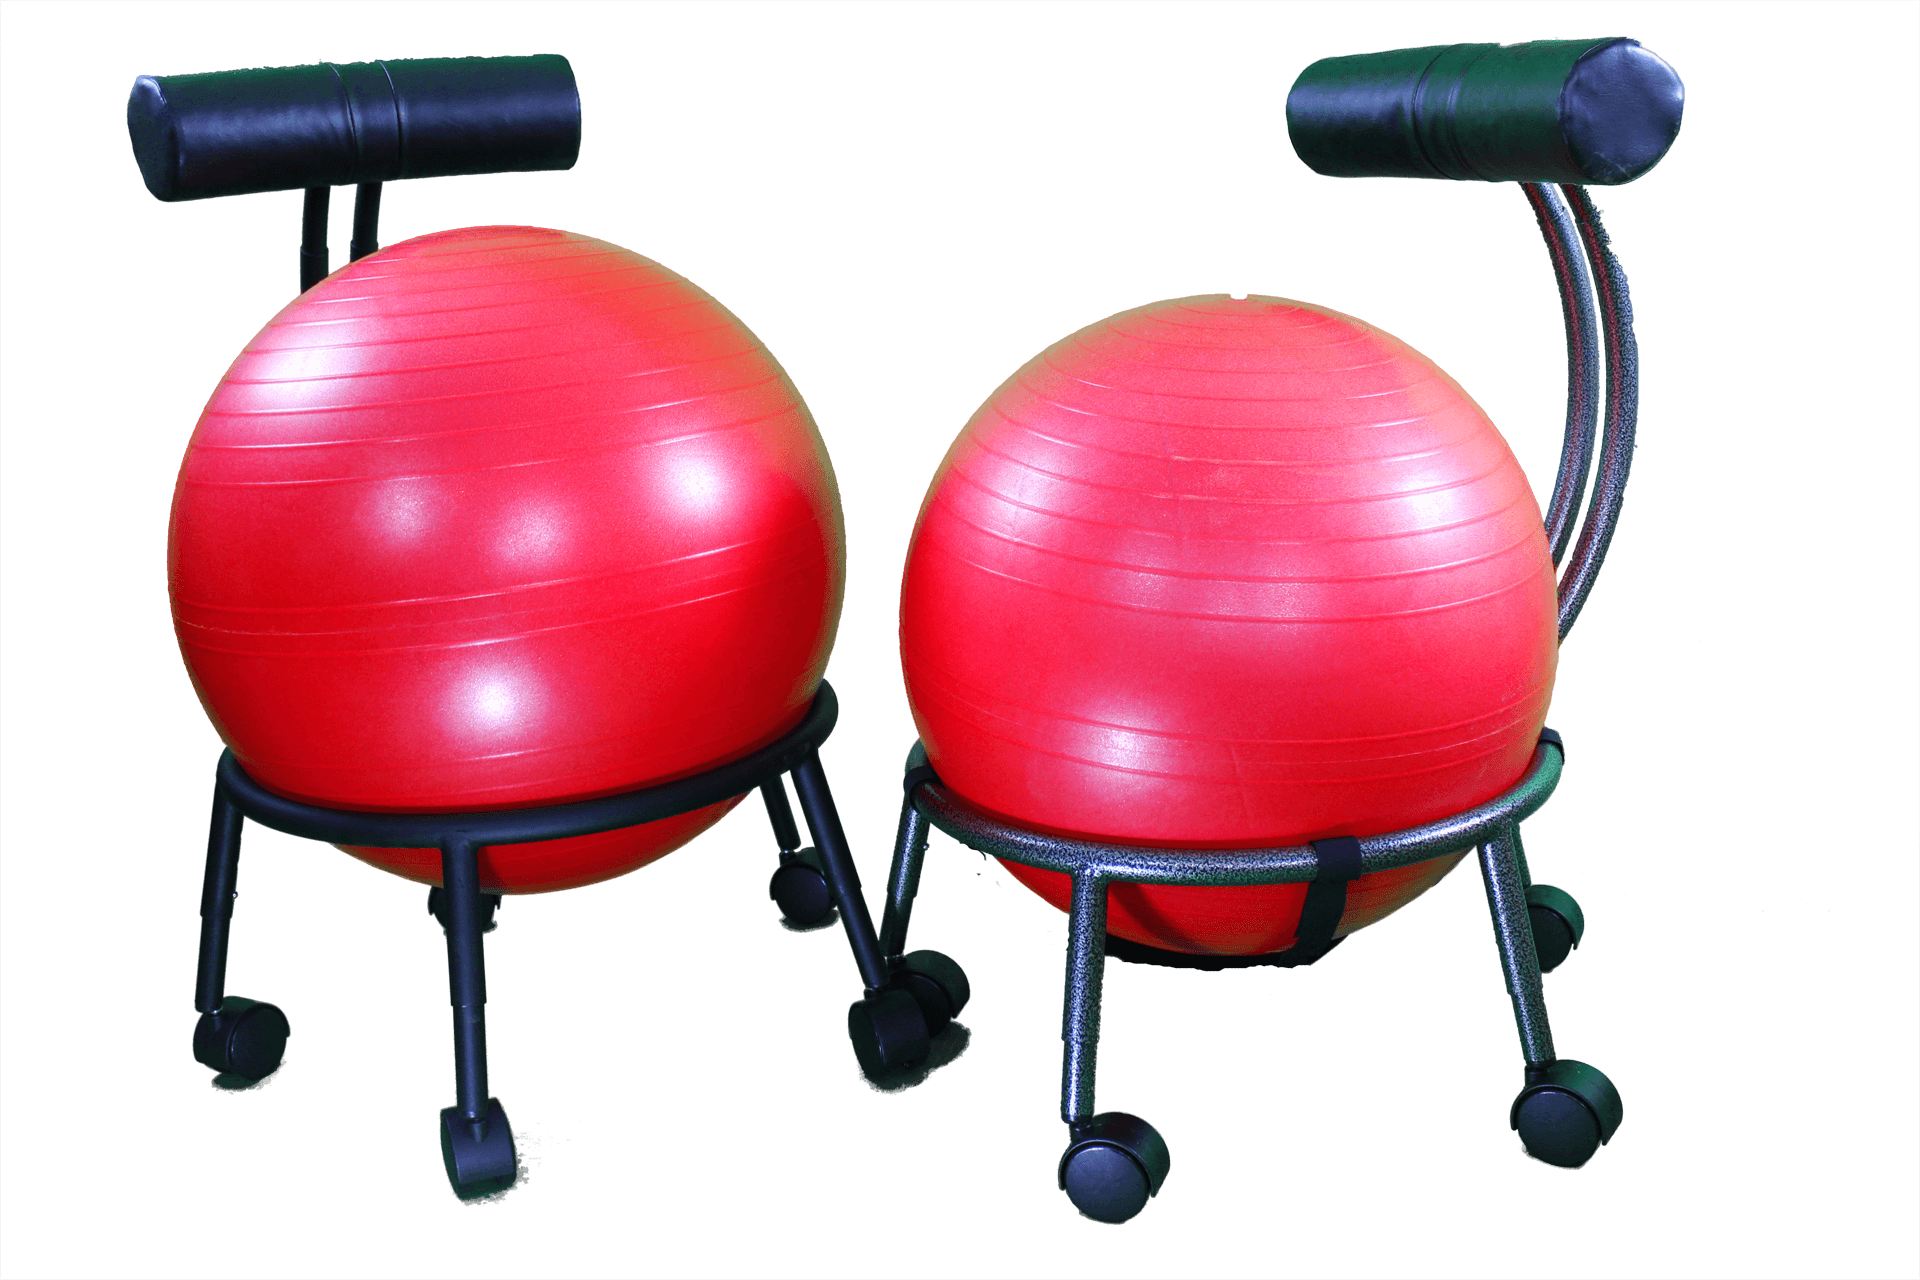 Therapeutic Ball Seat Helps Build A Healthier Back Align The Spine R